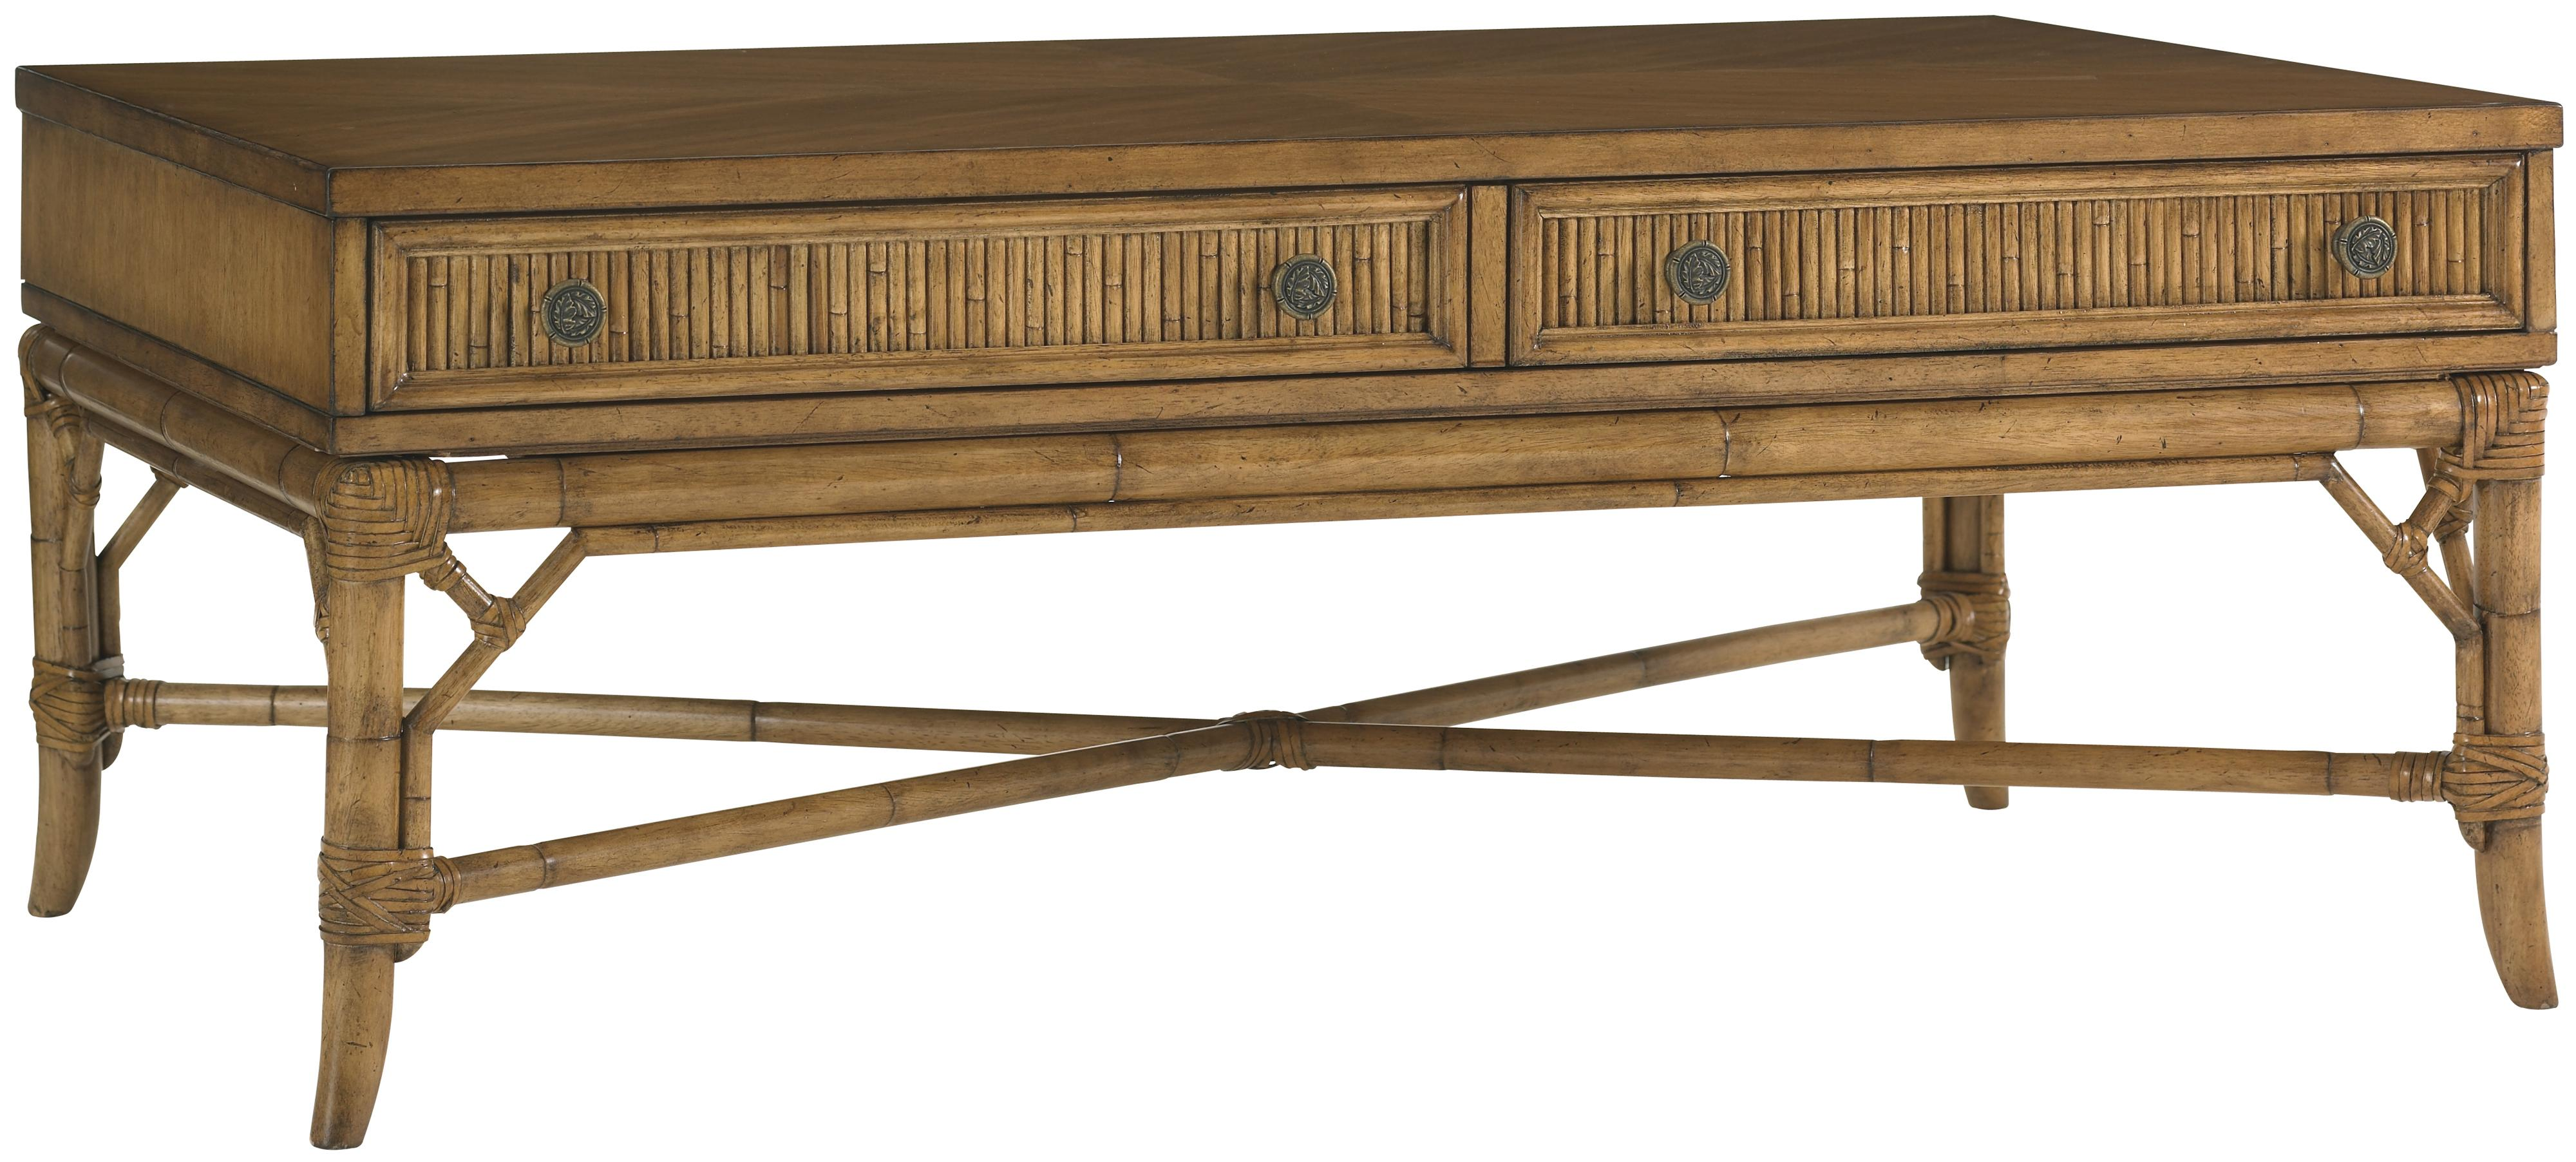 Home Office Furniture Naples Fl 2 190 471 kinetic office console Tommy Bahama Home Beach House Ponte Vedra Rectangular Cocktail Table